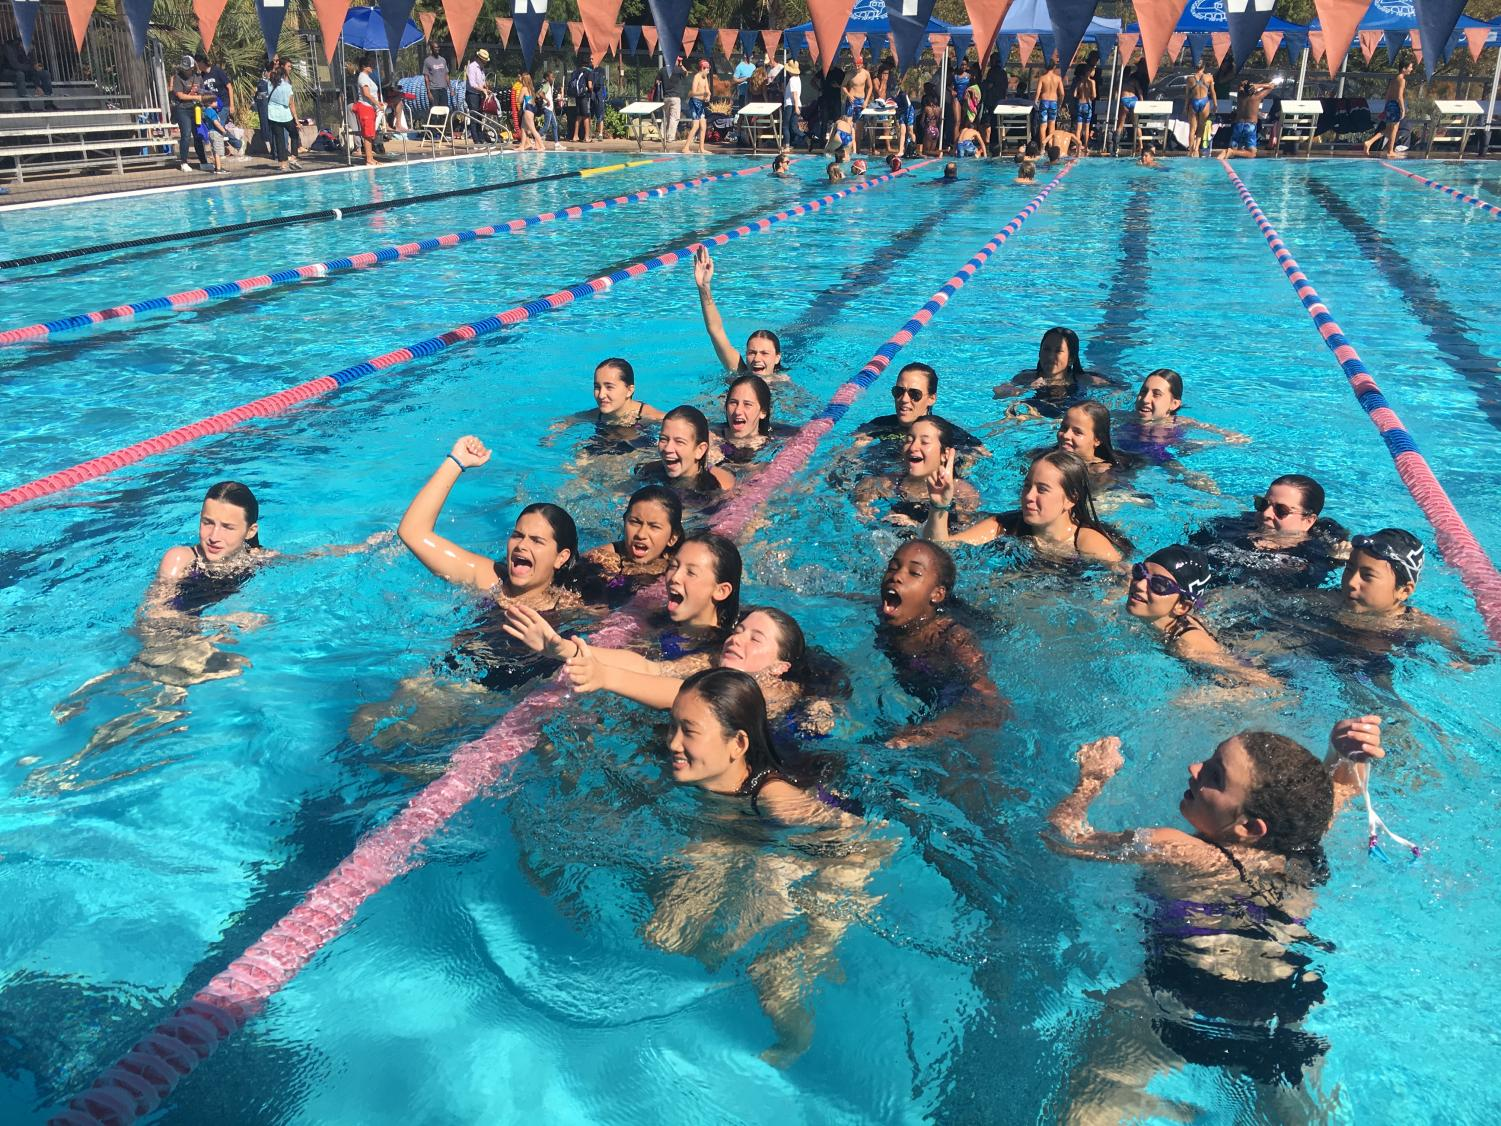 Archer's middle school swim team celebrates after winning the PBL championships at Brentwood school. The team won the PBL championship with 242 points.